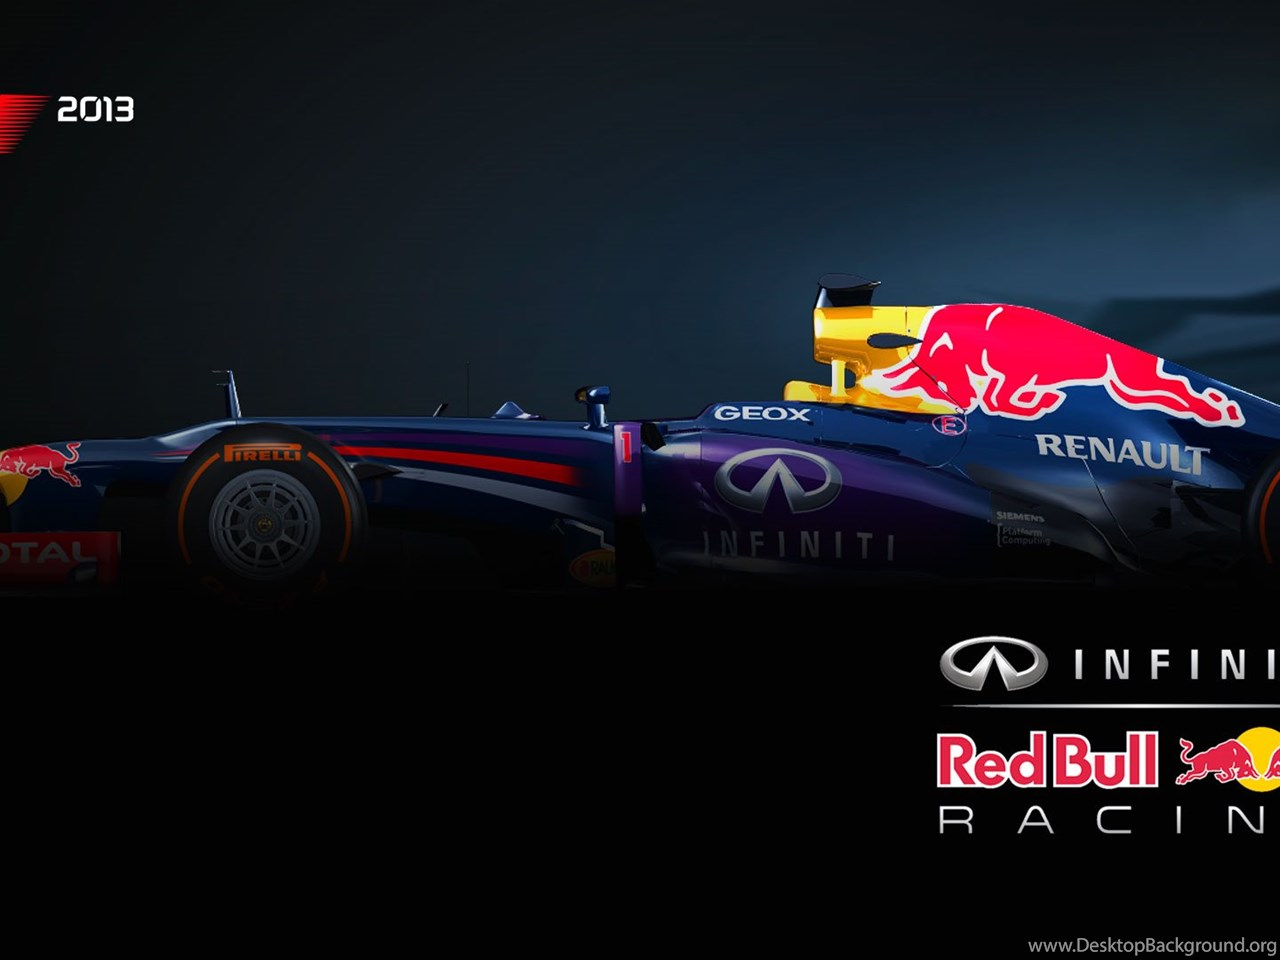 red bull racing hd wallpapers hd wallpaper backgrounds of your